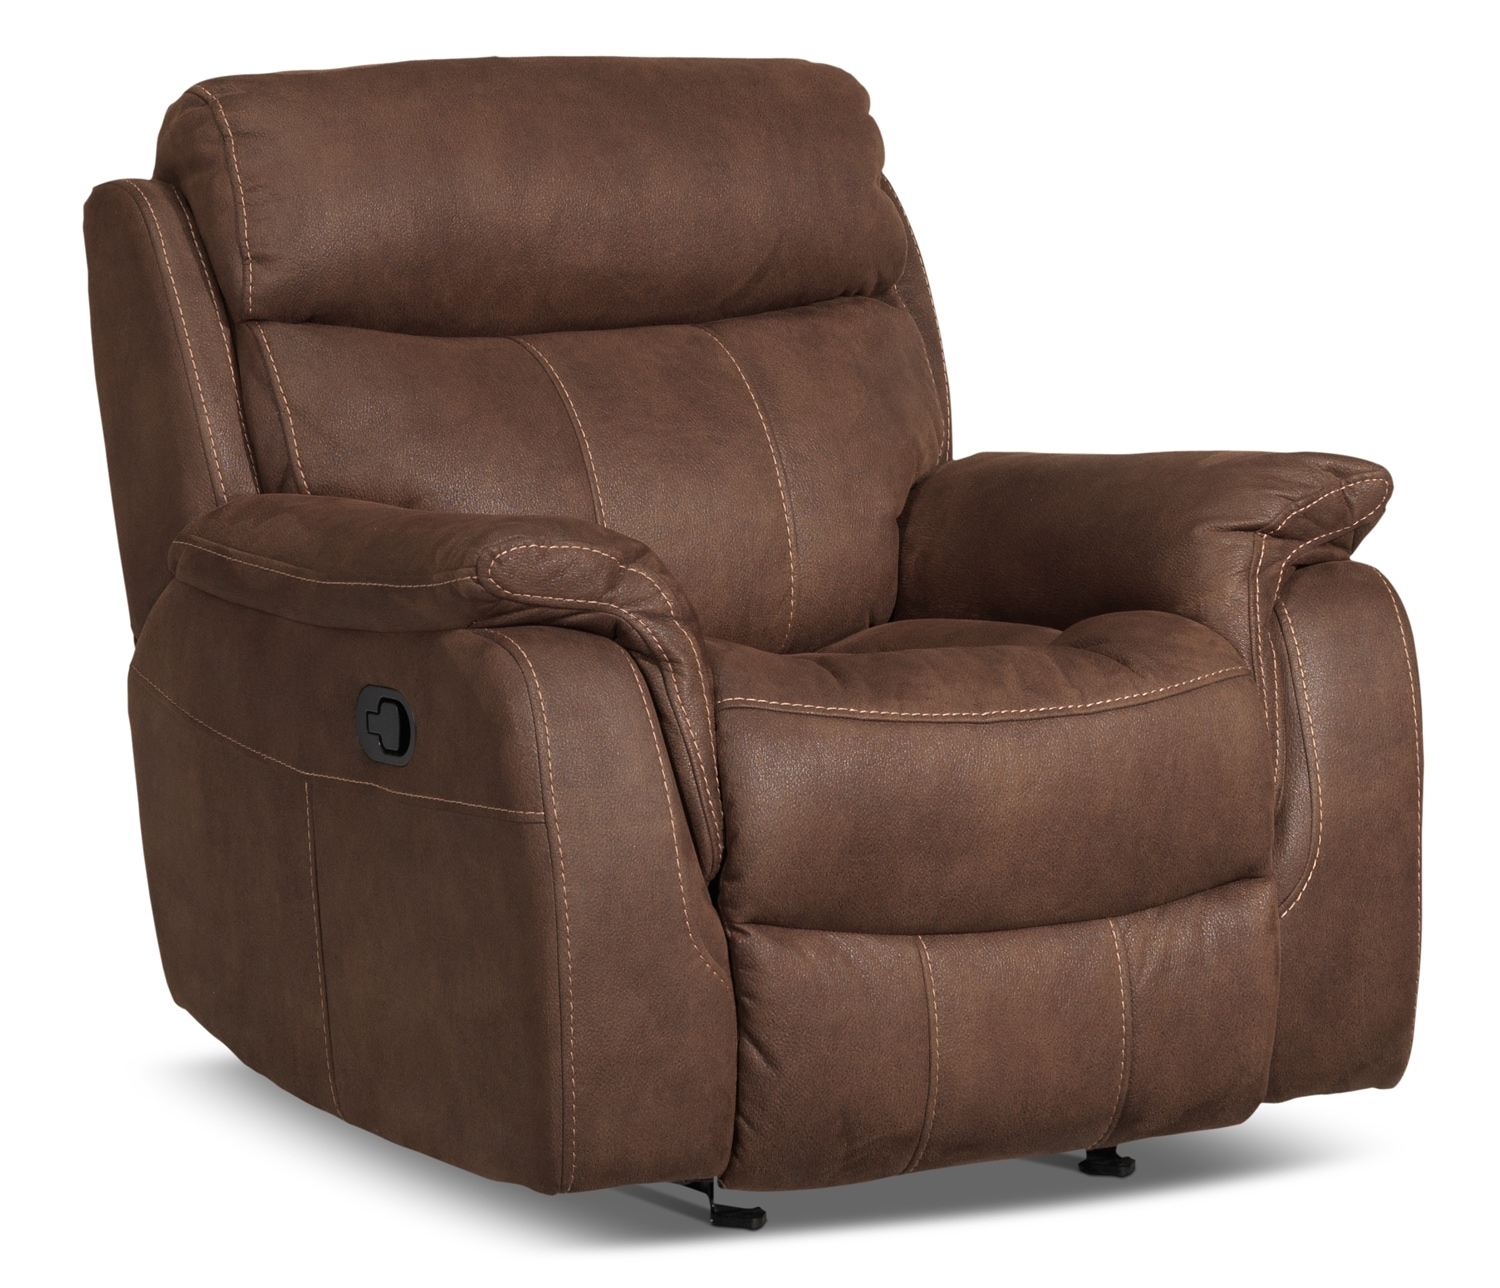 Living Room Furniture - Morrow Recliner - Saddle Brown